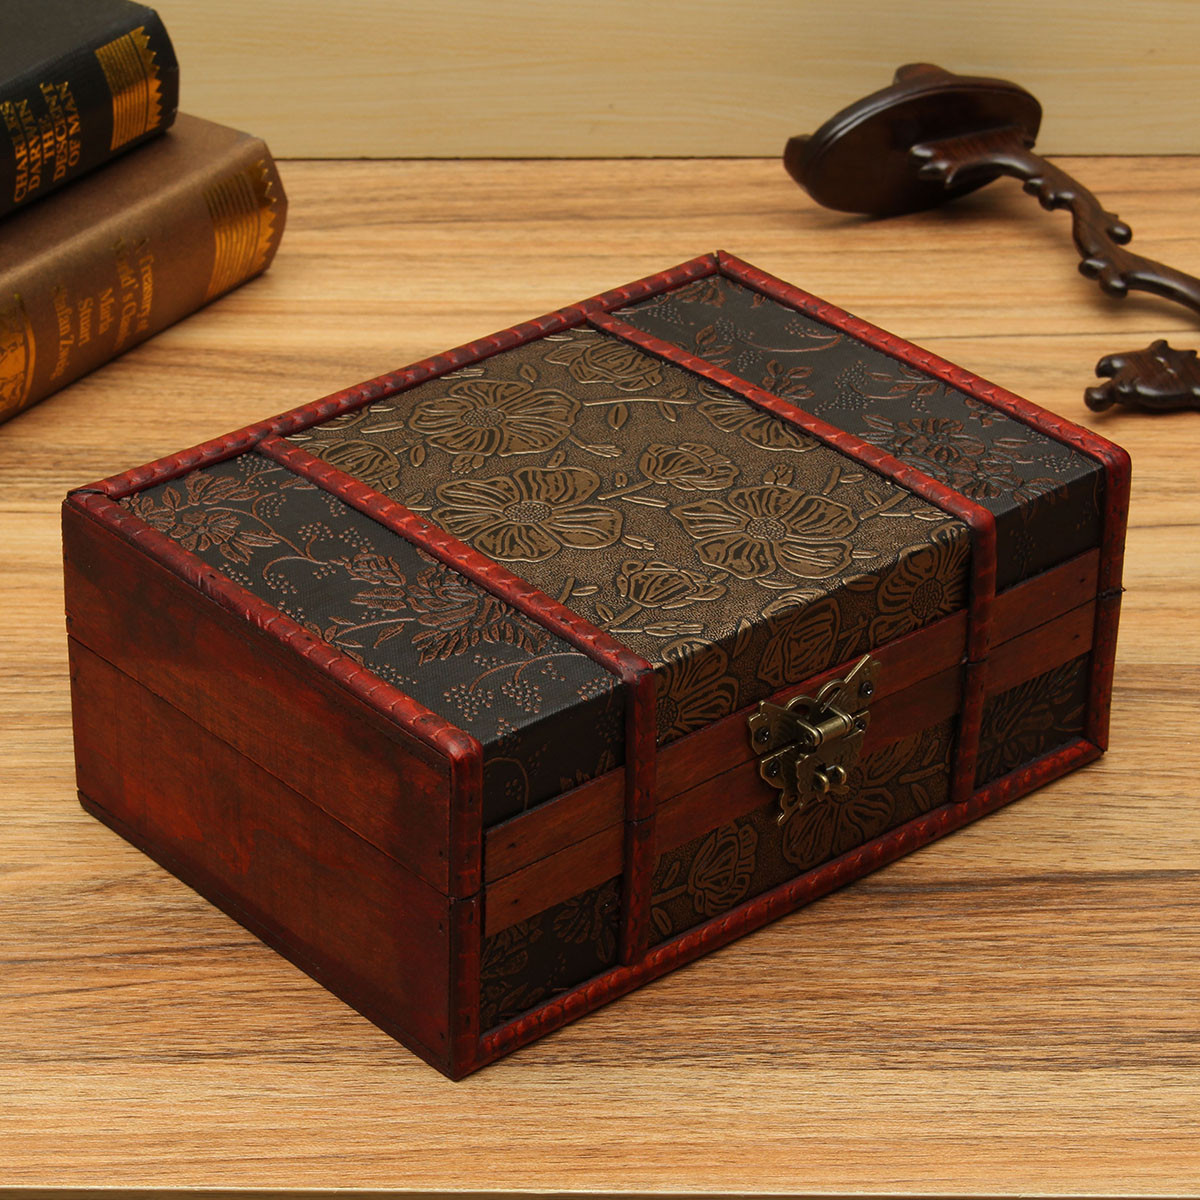 Decorative Boxes Uk: Large Decorative Trinket Jewelry Lock Chest Handmade